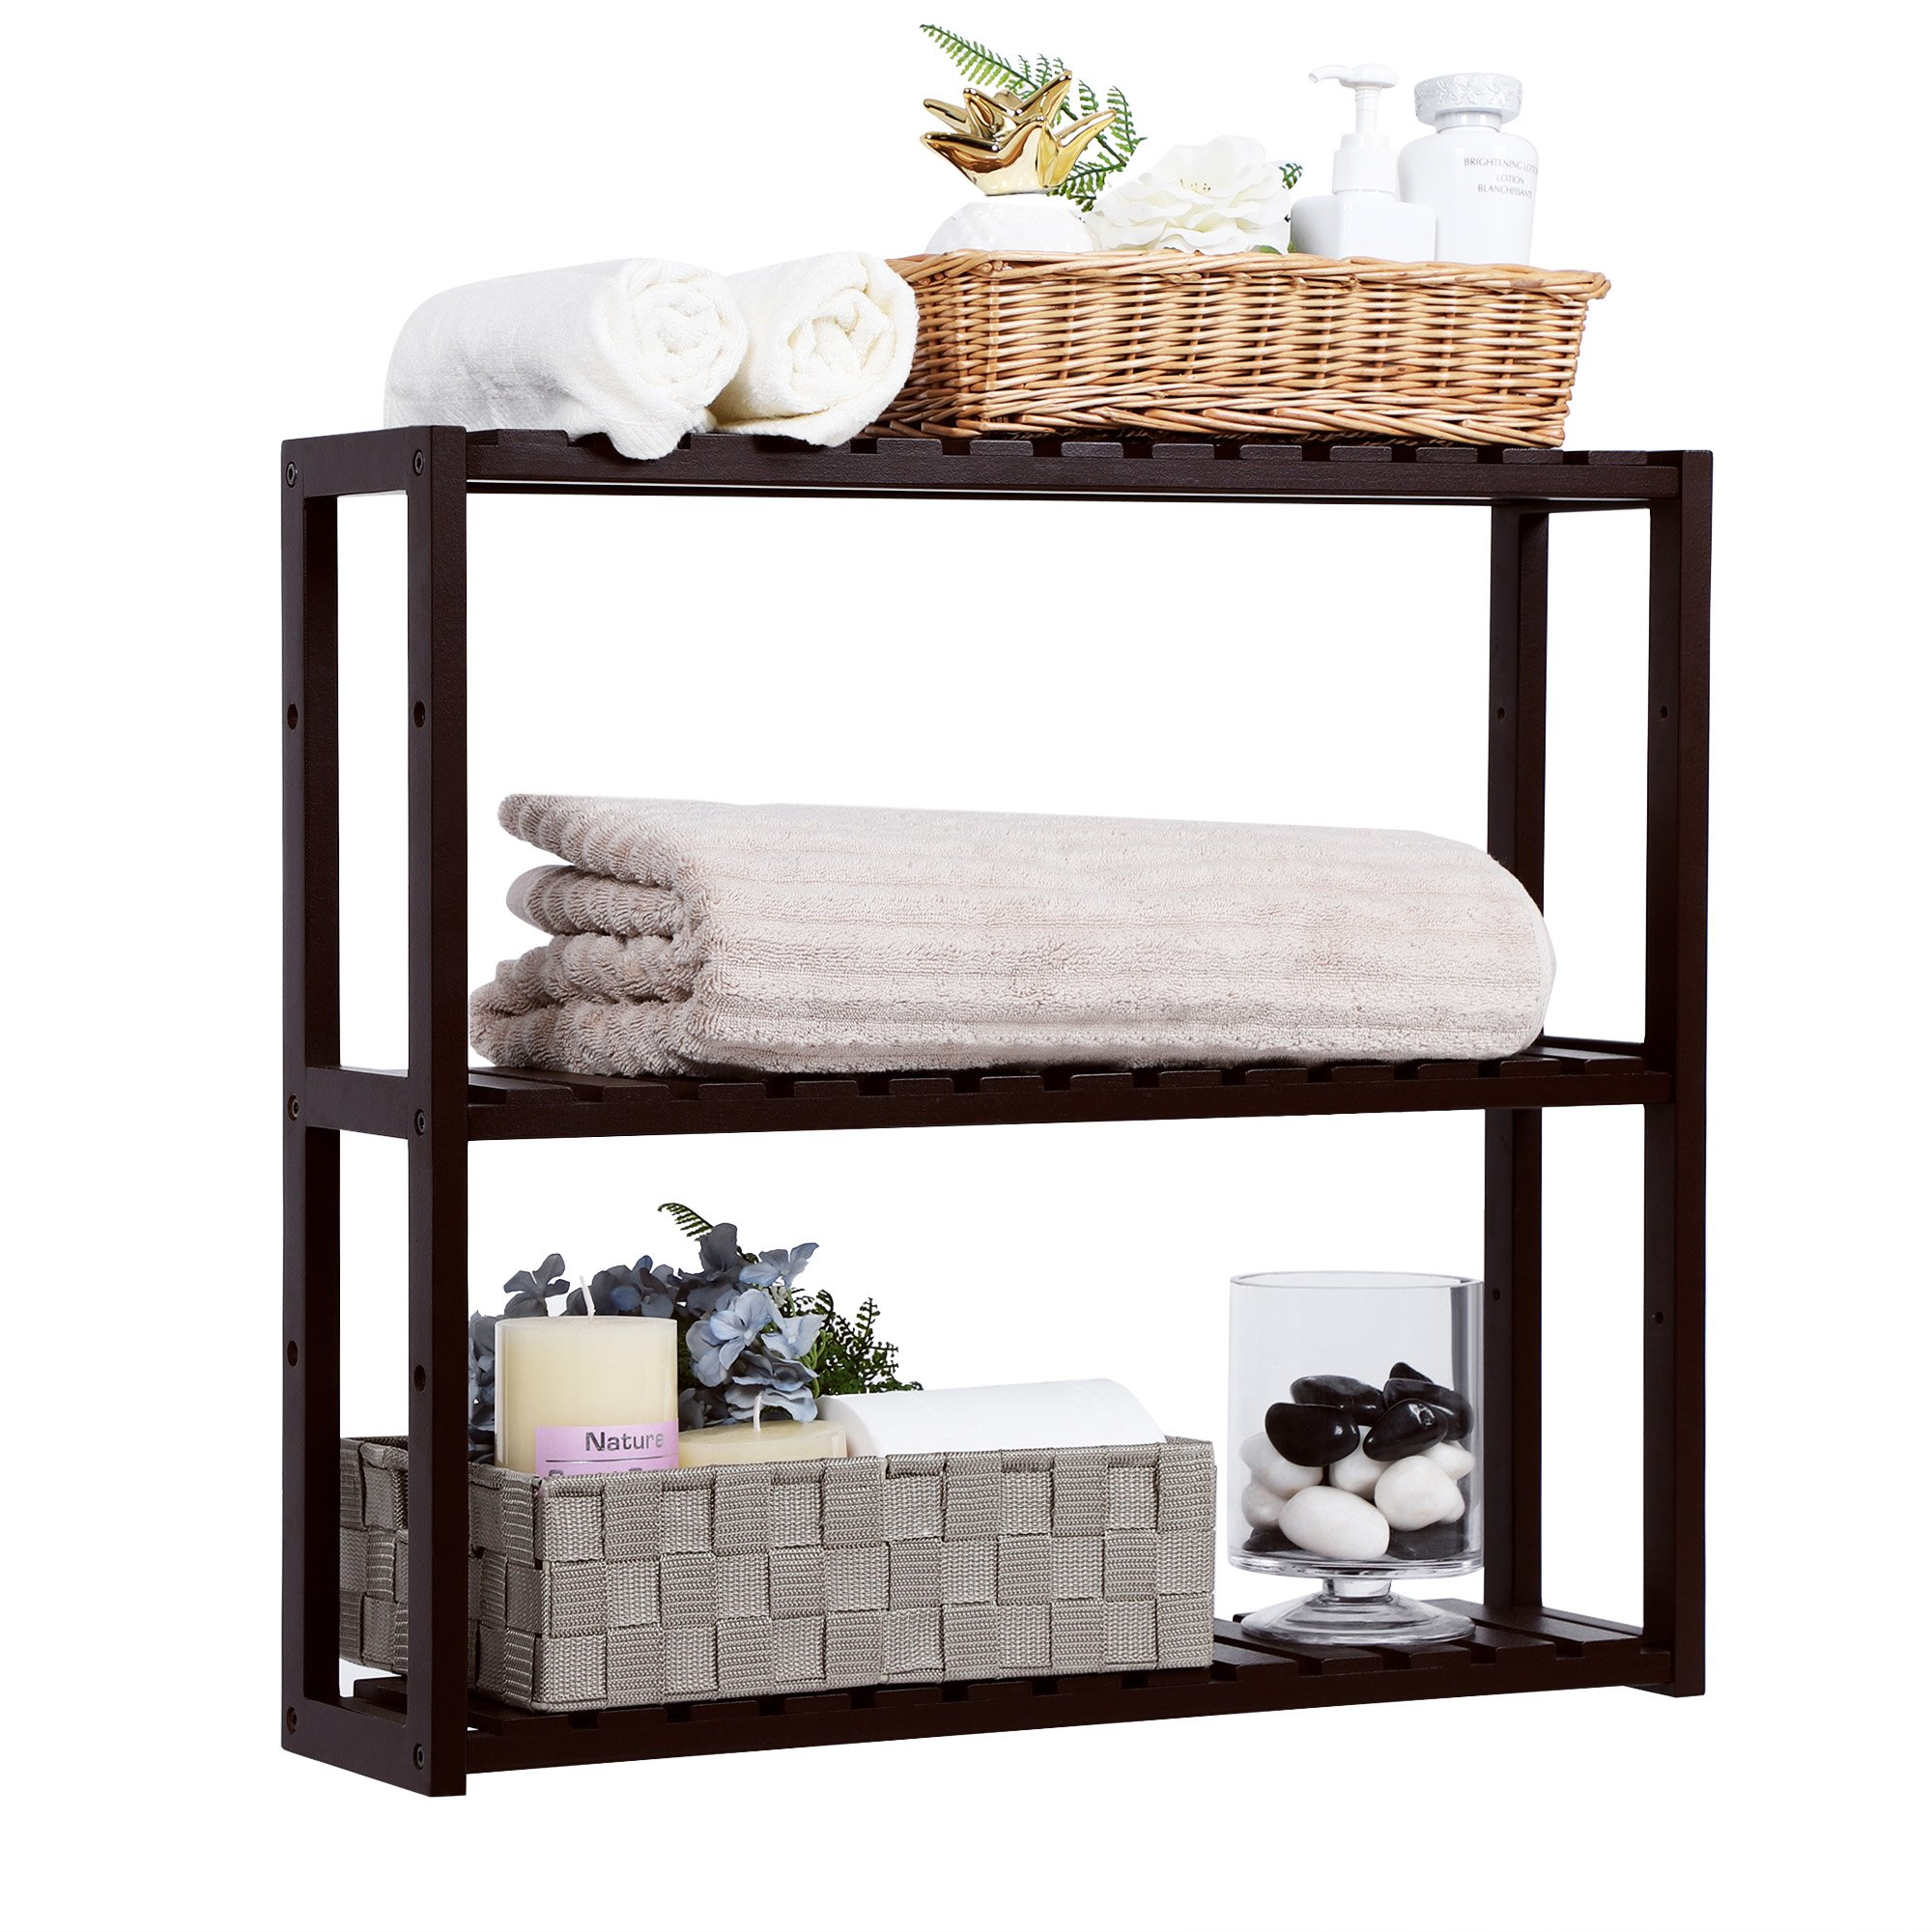 SONGMICS 3-Tier Small Utility Storage Shelf Rack,Bamboo Adjustable layer Bathroom Towel Shelf Multifunctional Kitchen Living Room Holder Wall Mounted Brown UBCB13Z